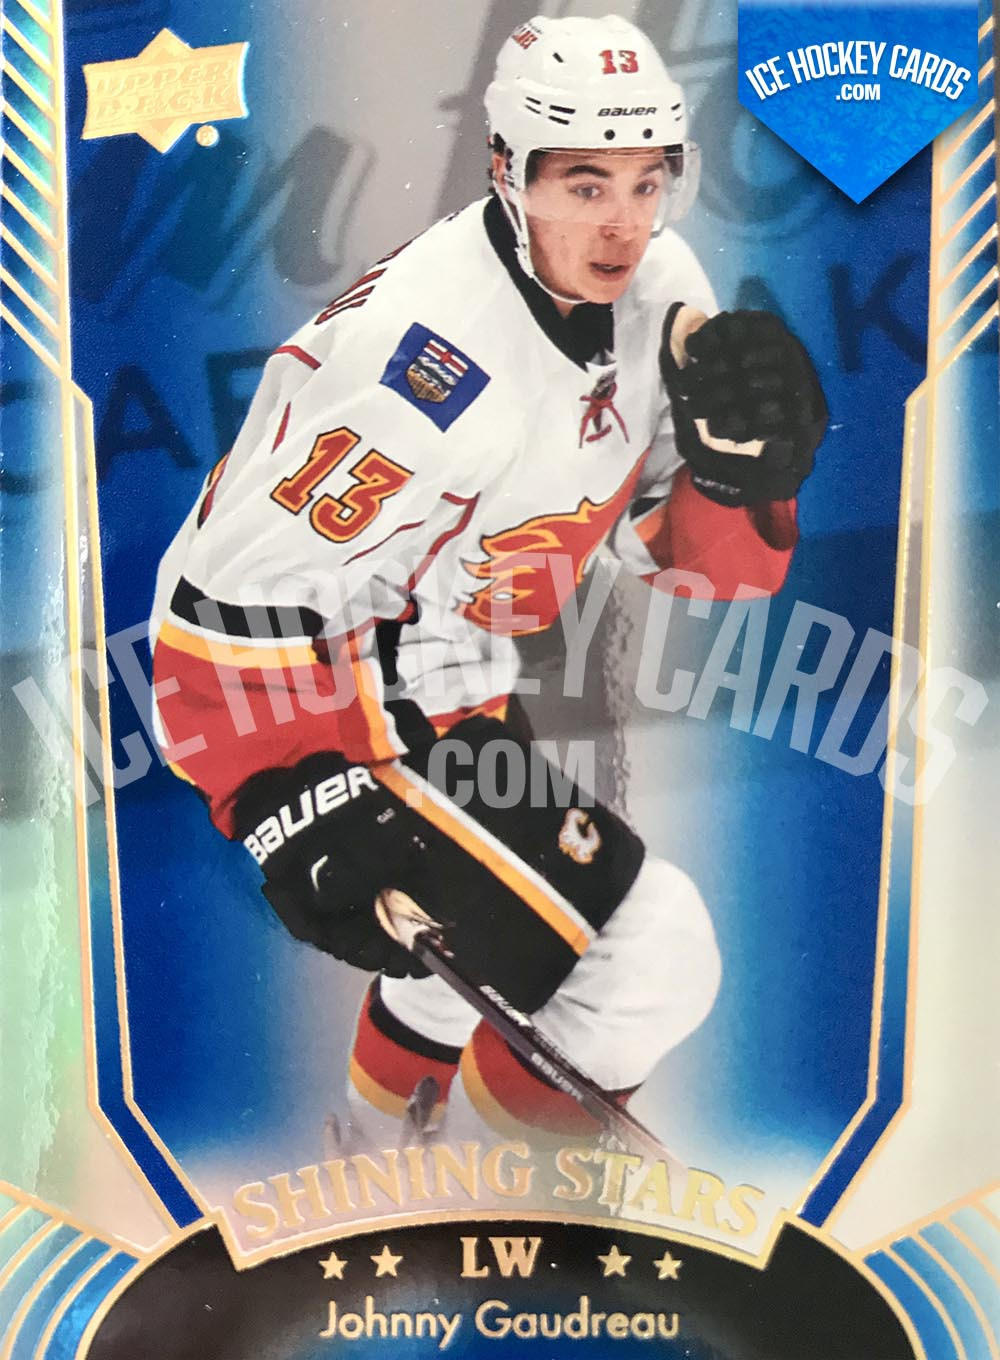 Upper Deck - Series 1 2016-17 - Johnny Gaudreau Shining Stars Blue Card